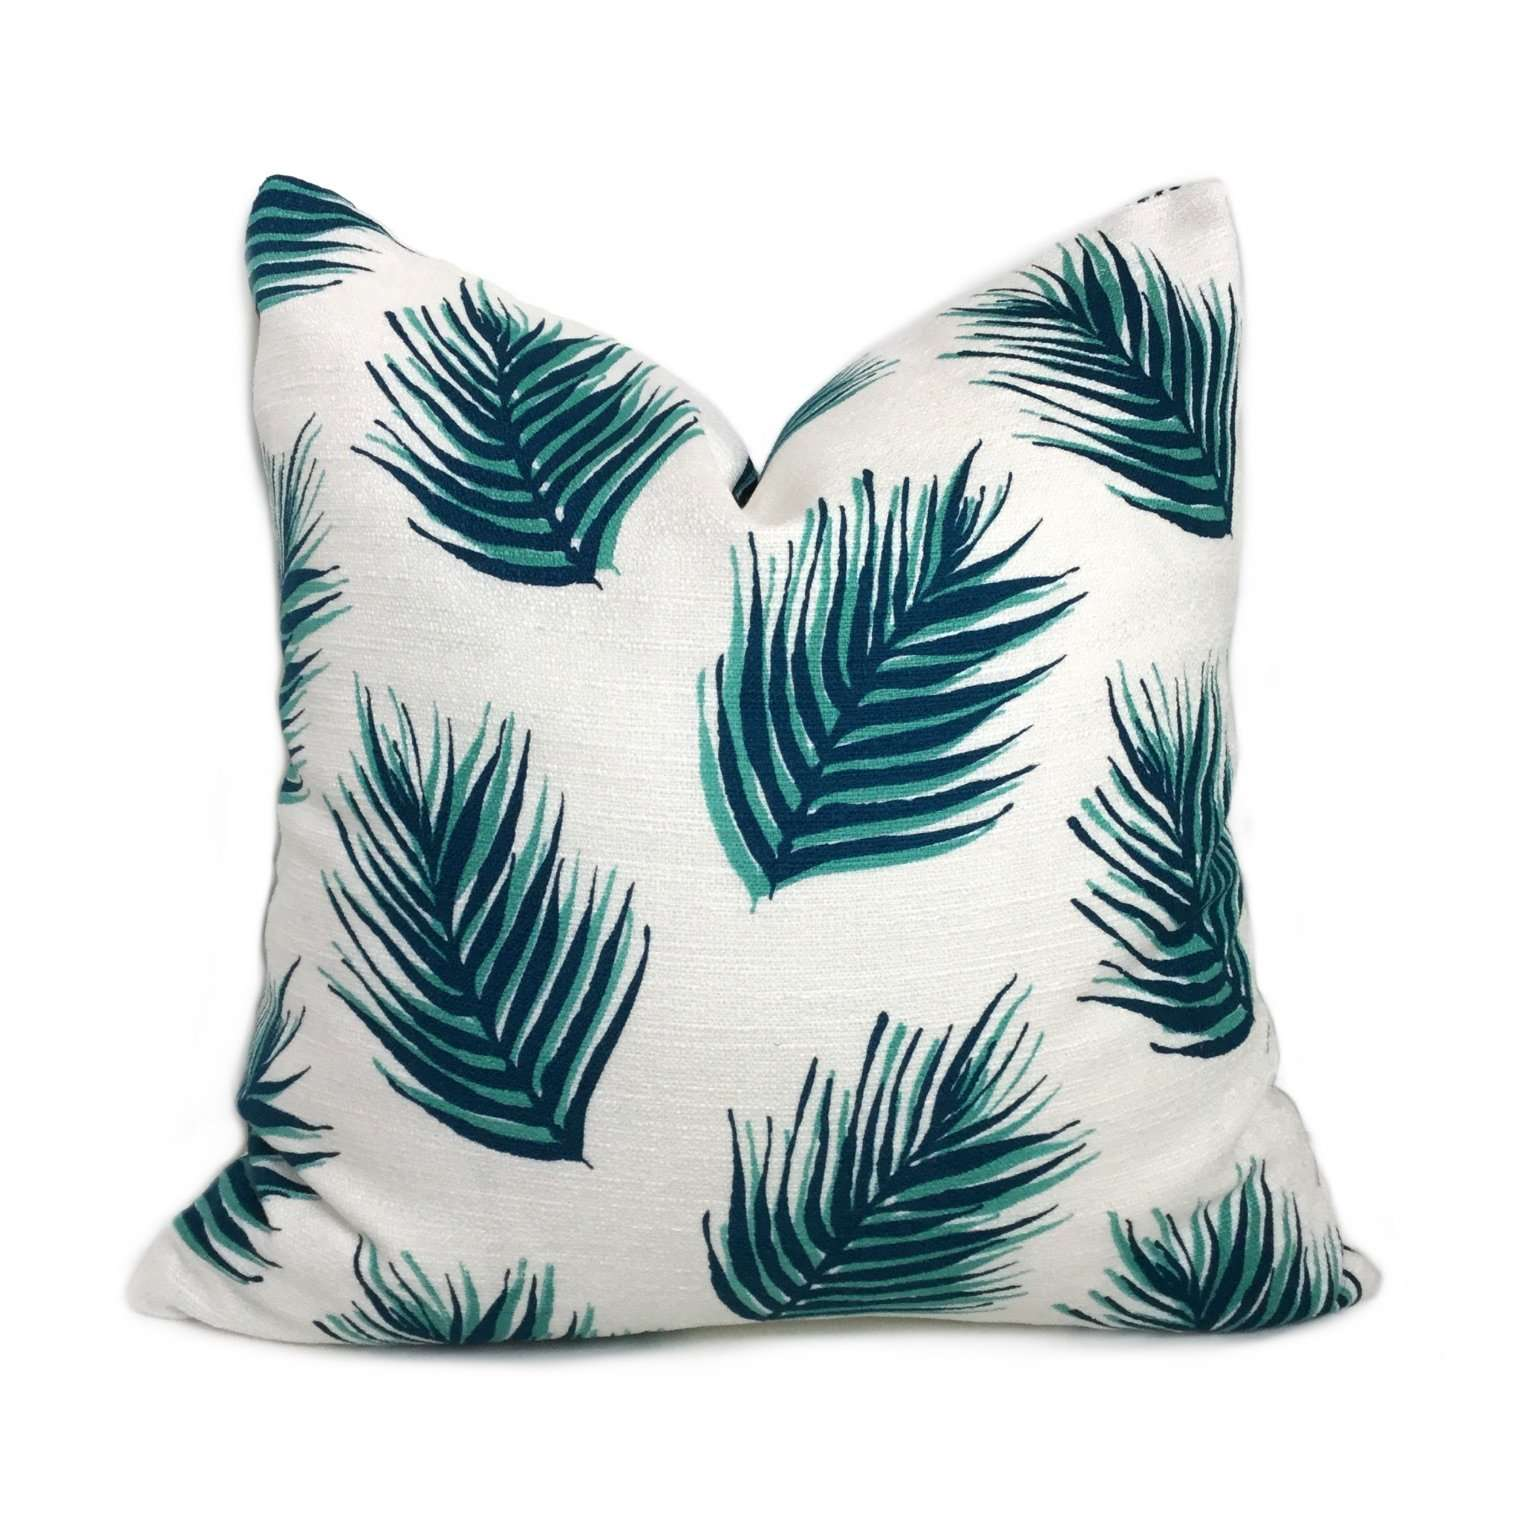 Nate Berkus Green Palm Leaves Cotton Print Pillow Cover Cushion Pillow Case Euro Sham 16x16 18x18 20x20 22x22 24x24 26x26 28x28 Lumbar Pillow 12x18 12x20 12x24 14x20 16x26 by Aloriam